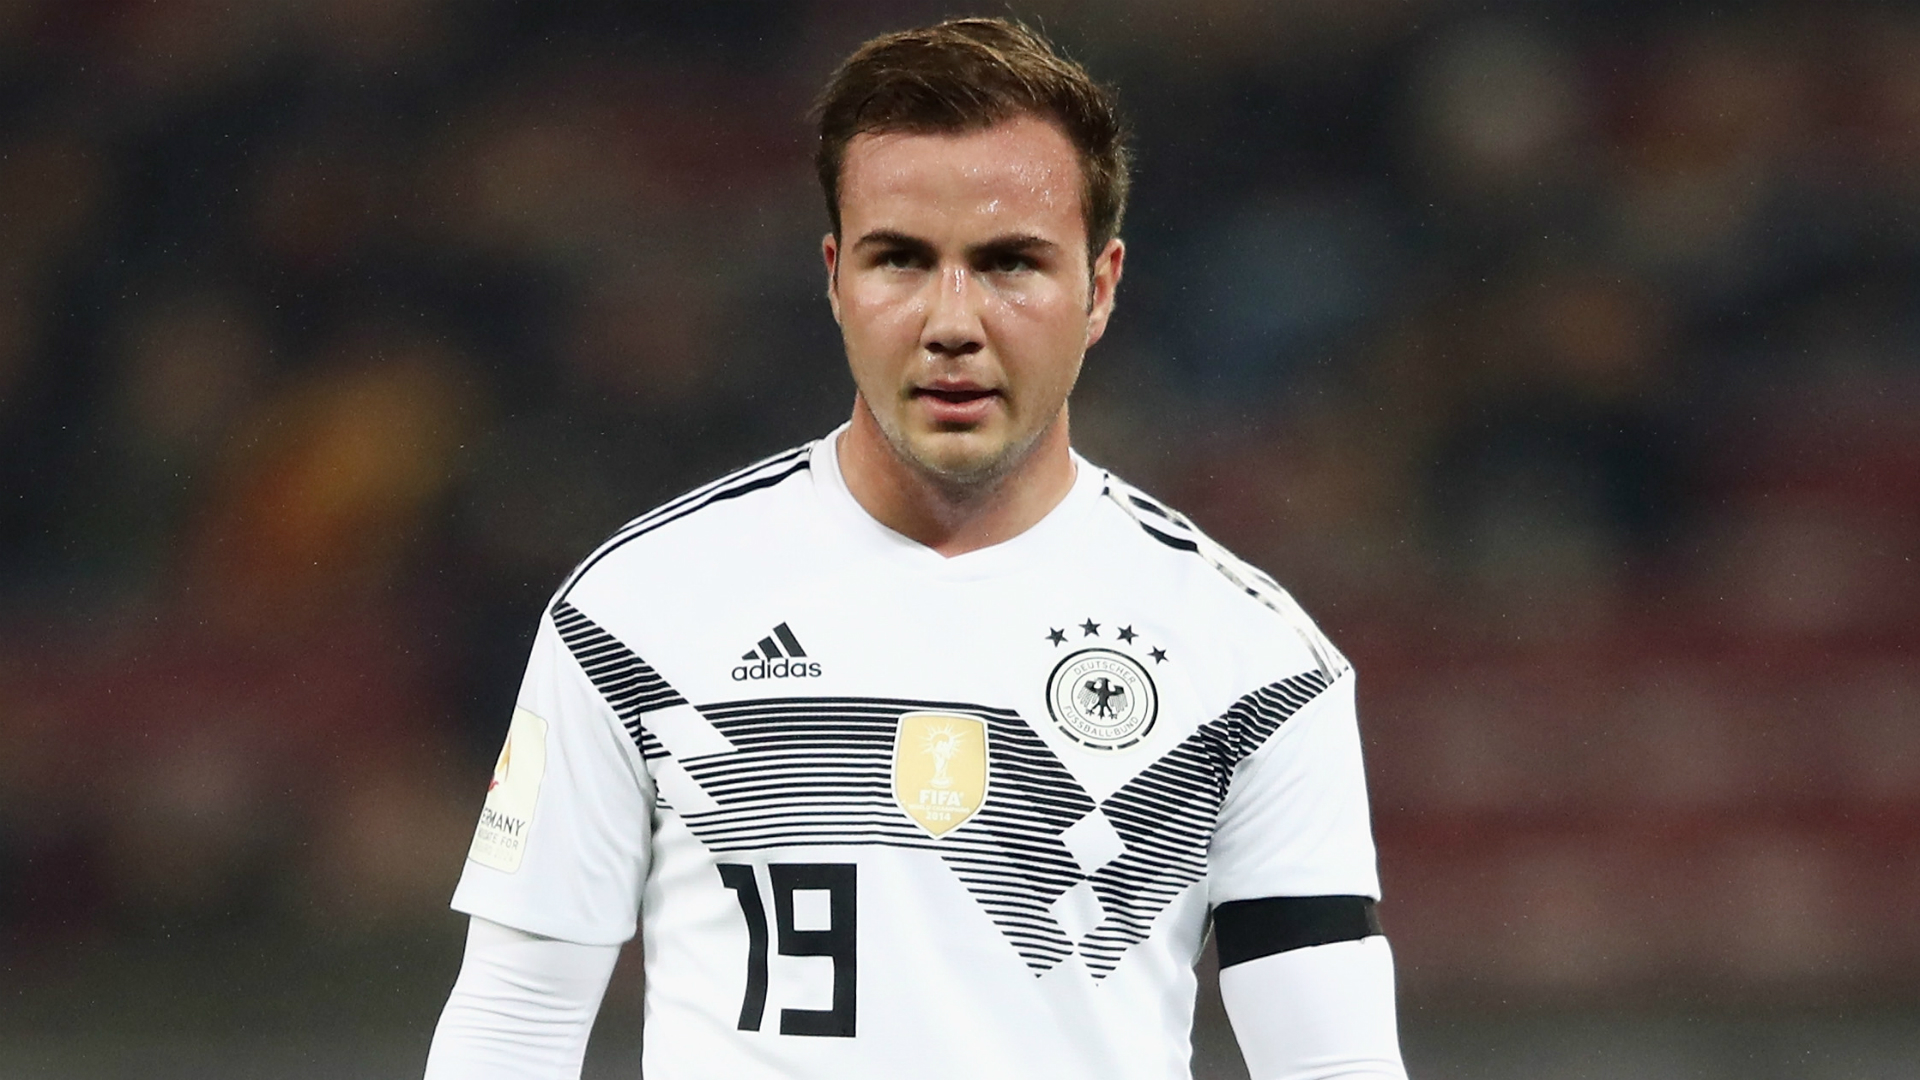 Gotze warns against radical change after Germany's World Cup failure